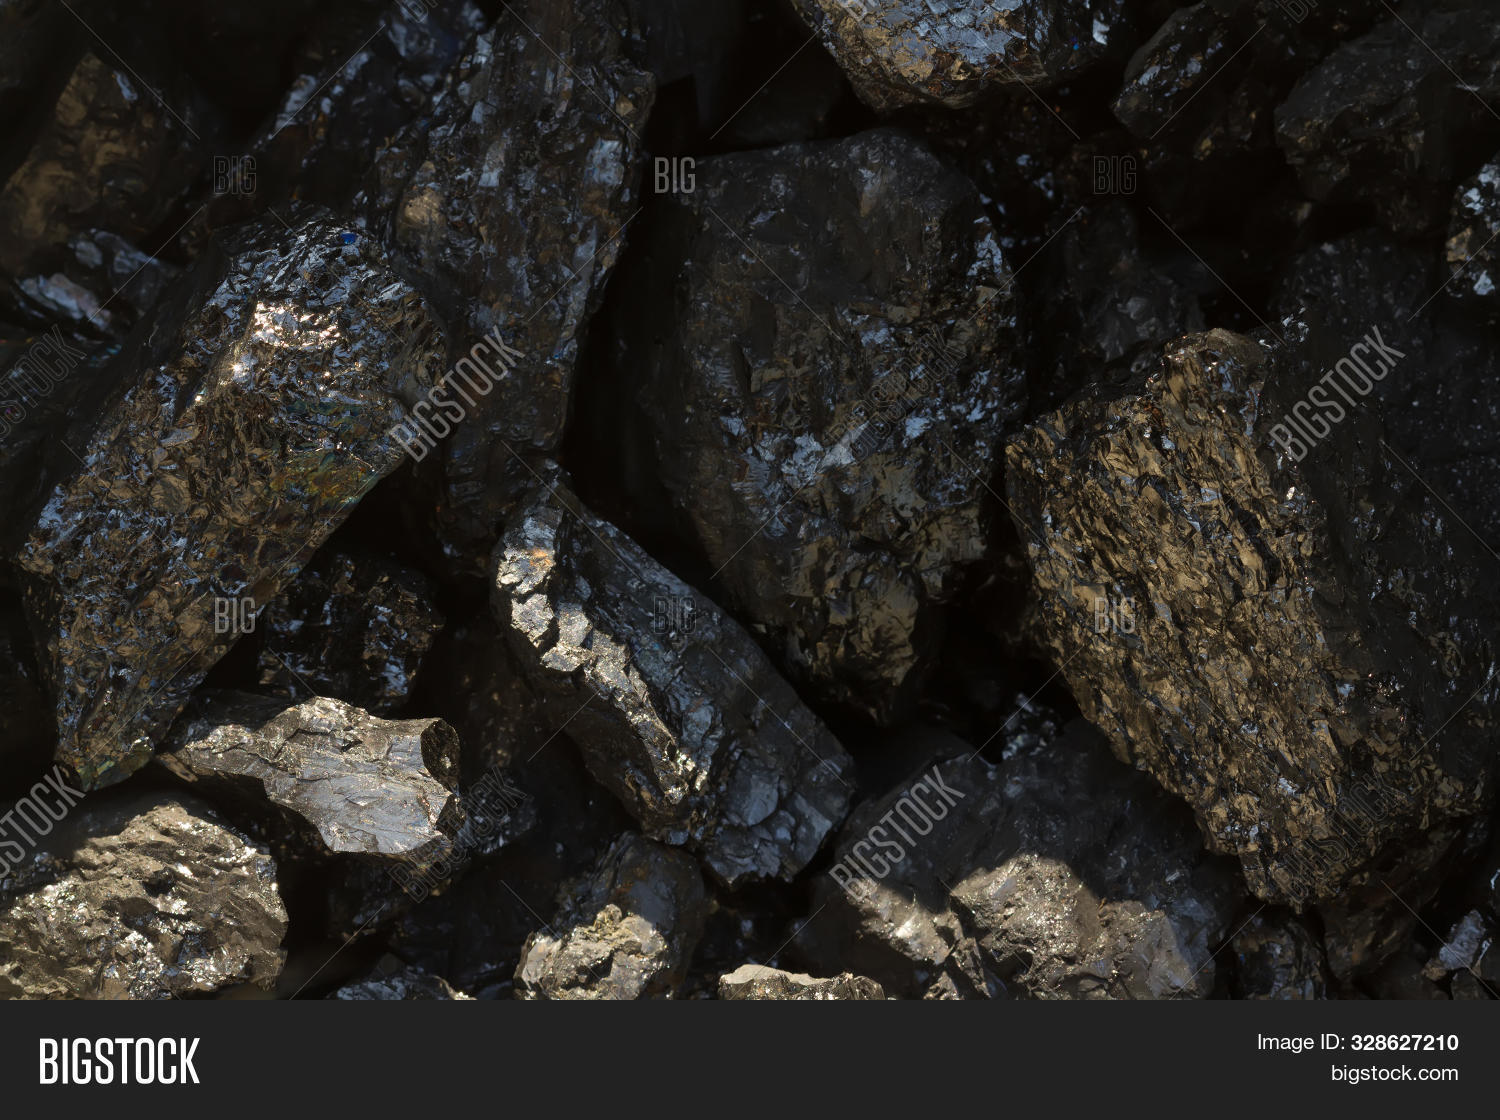 Black coal mine close-up with soft focus. Anthracite coal bar on dark background. Natural black coal bars for background. Industrial coal nuggets close up